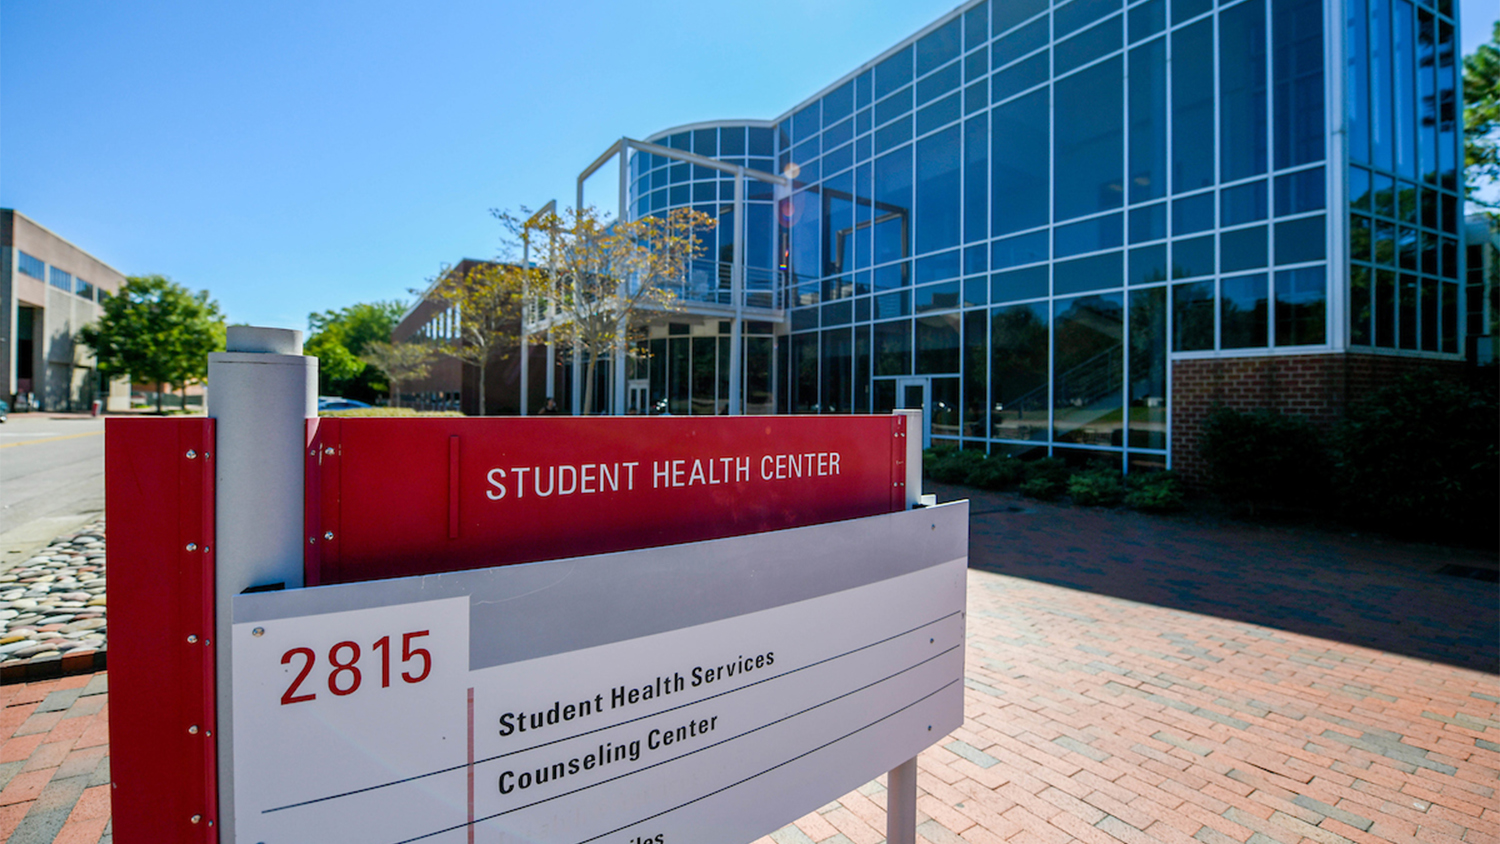 The exterior of the Student Health Center, with a sign that reads Student Health Center